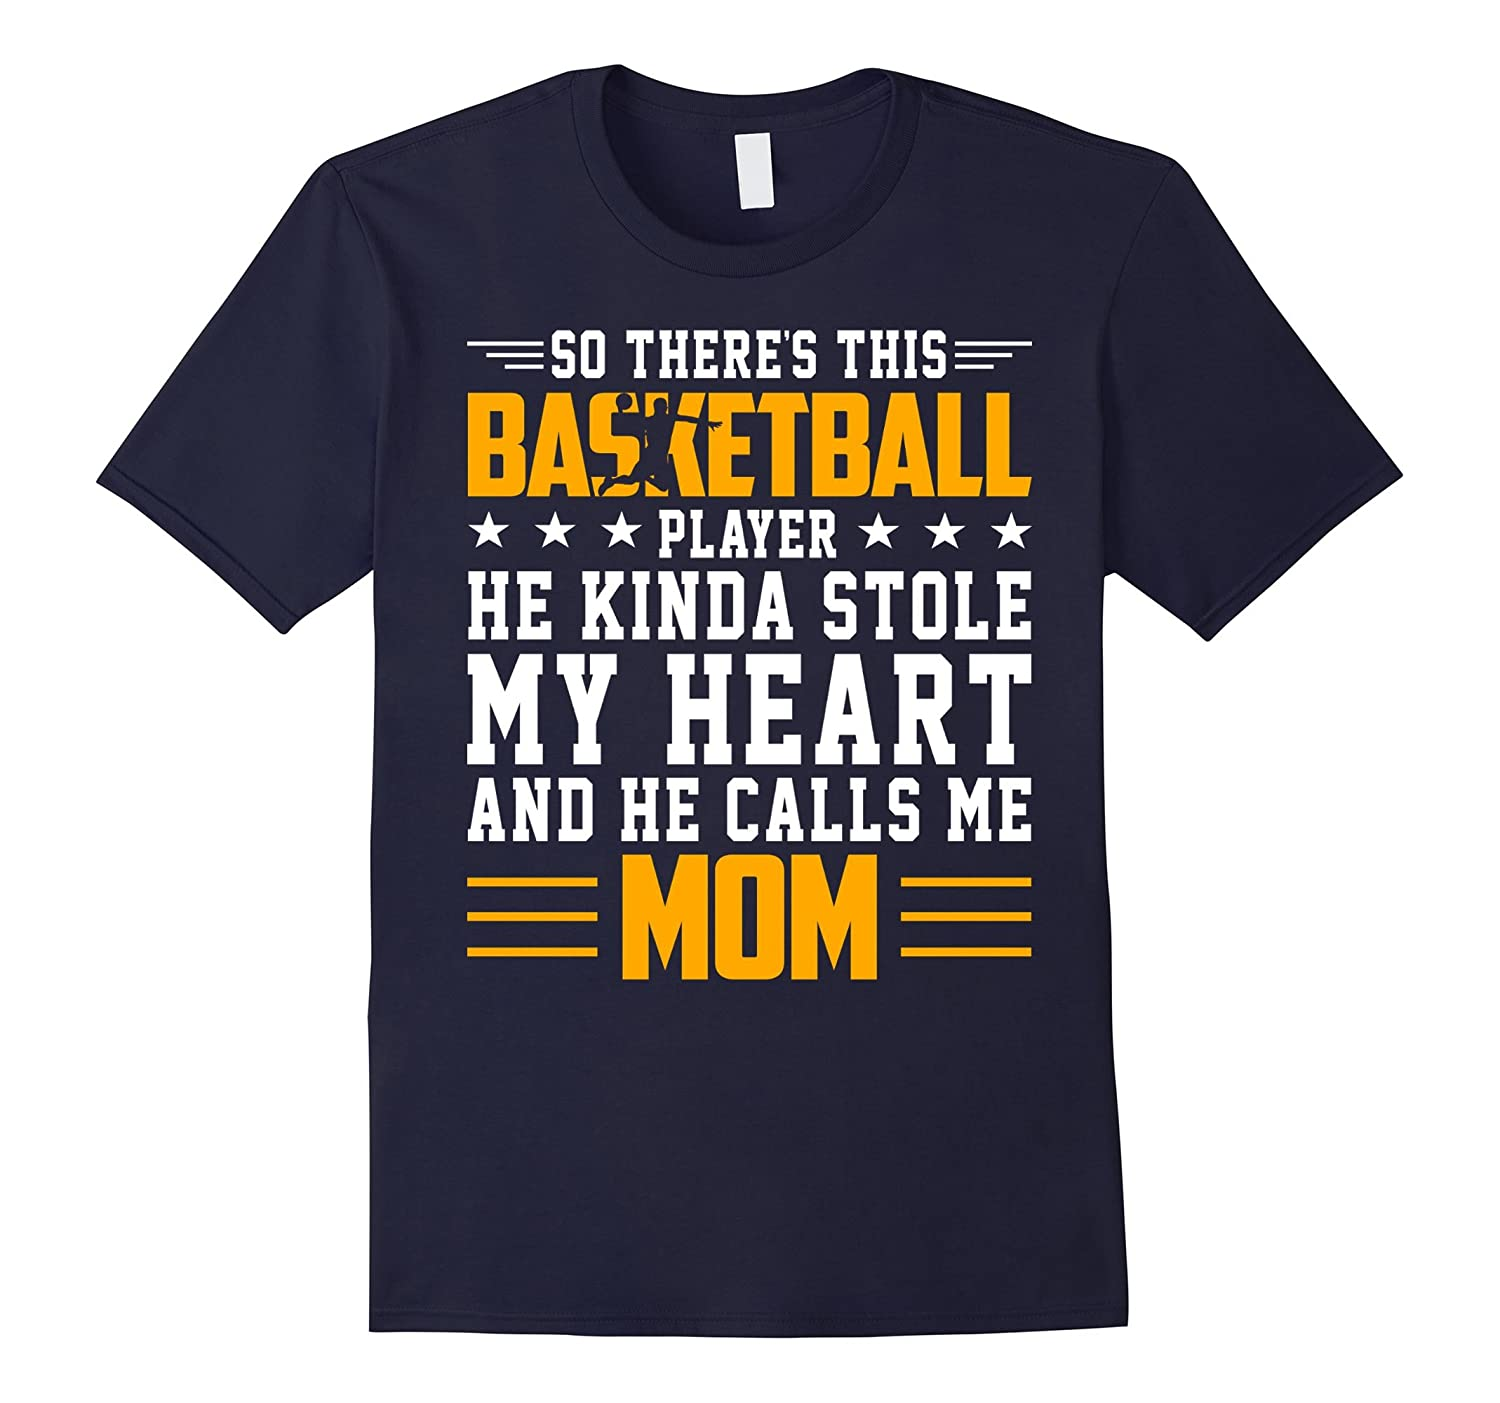 Basketball Player Stole My Heart Calls Me Mom Mother Shirt